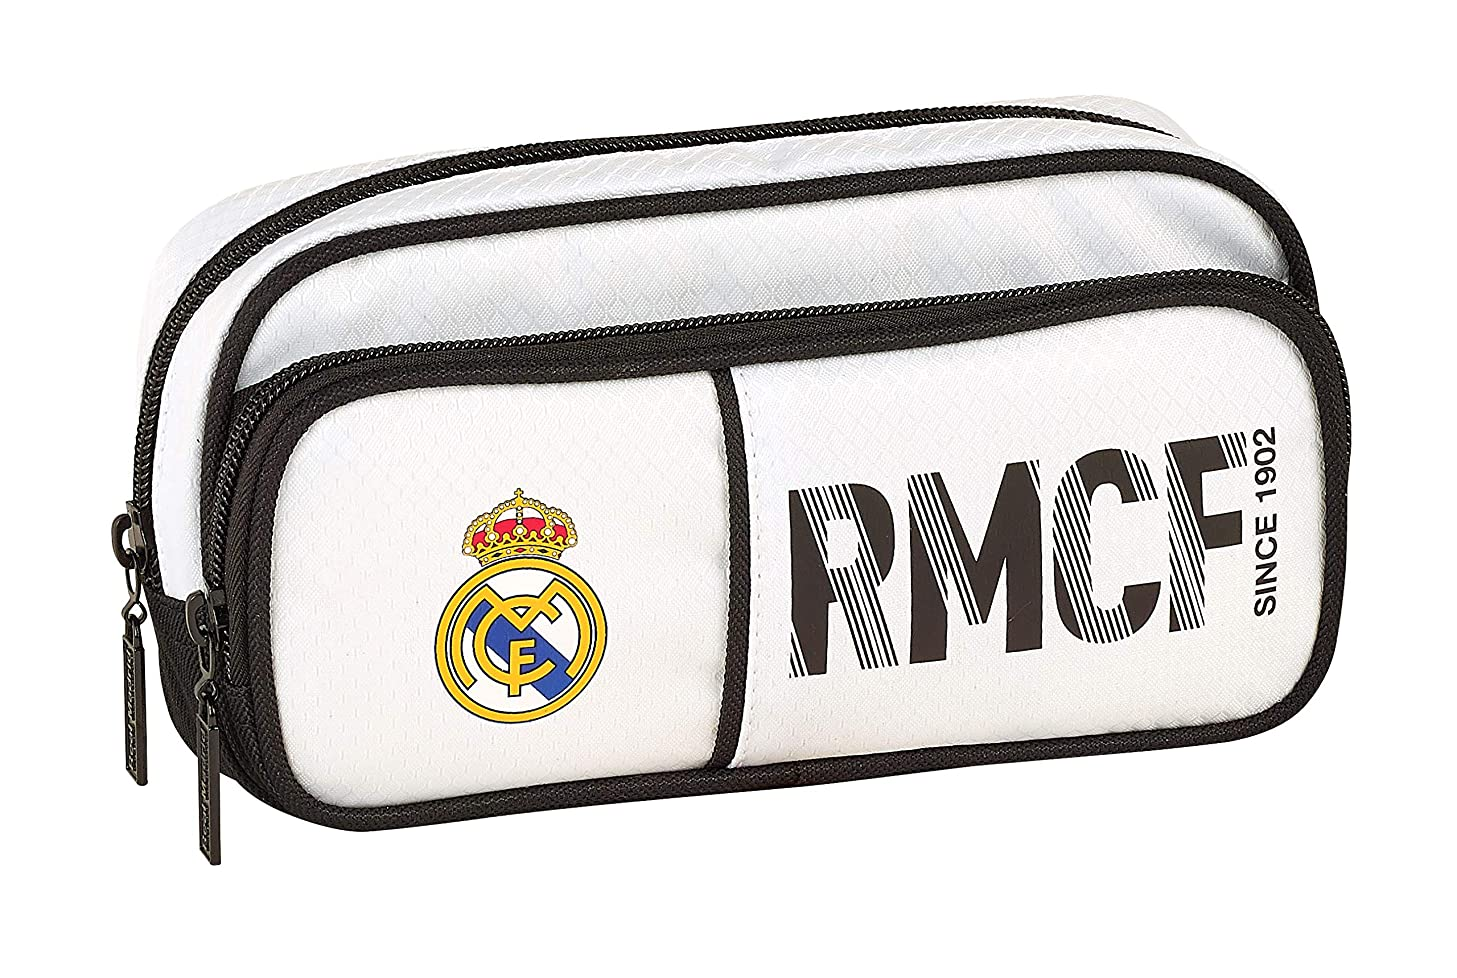 Real Madrid 2018 Pencil Cases, 21 cm, White (Blanco)